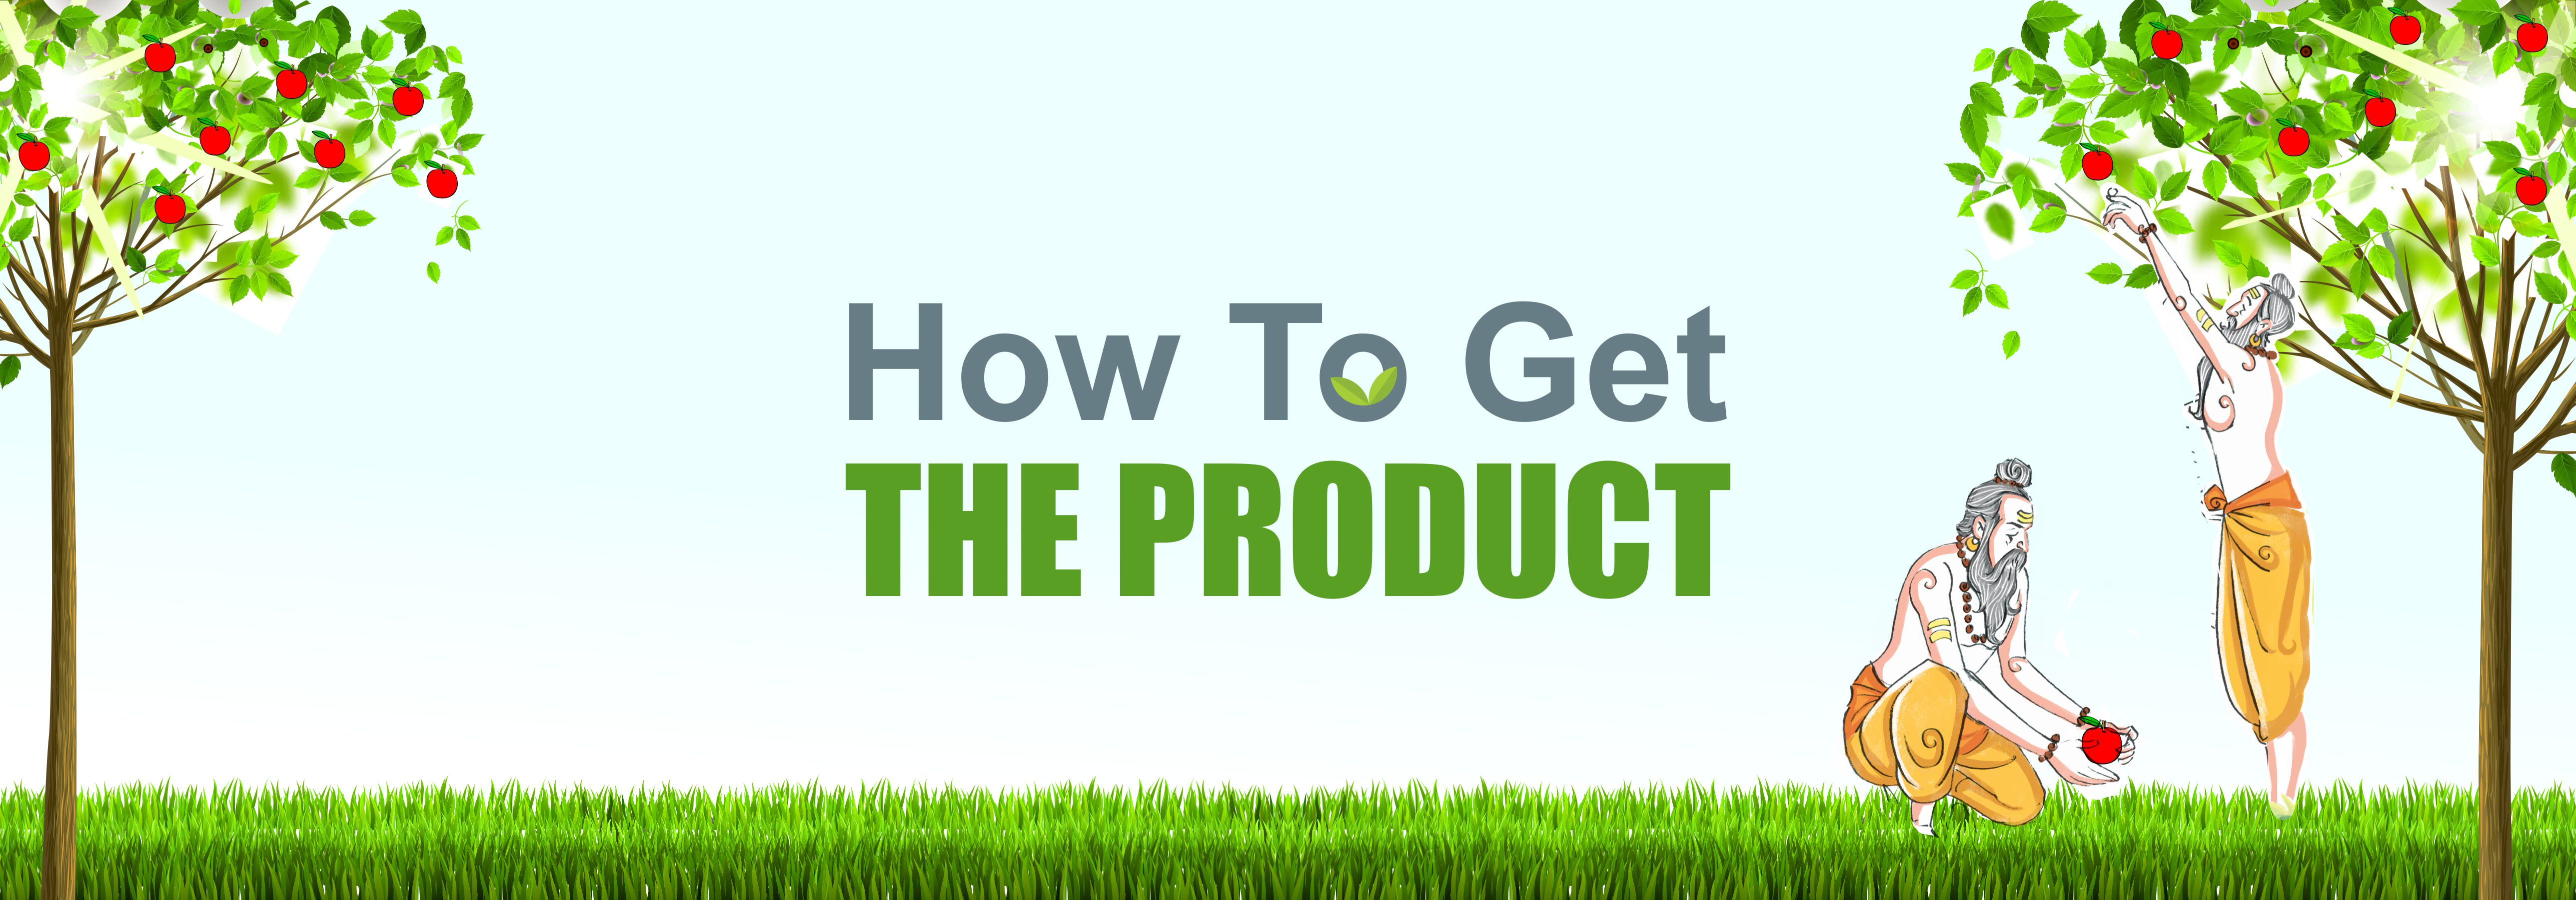 How to Get the Product